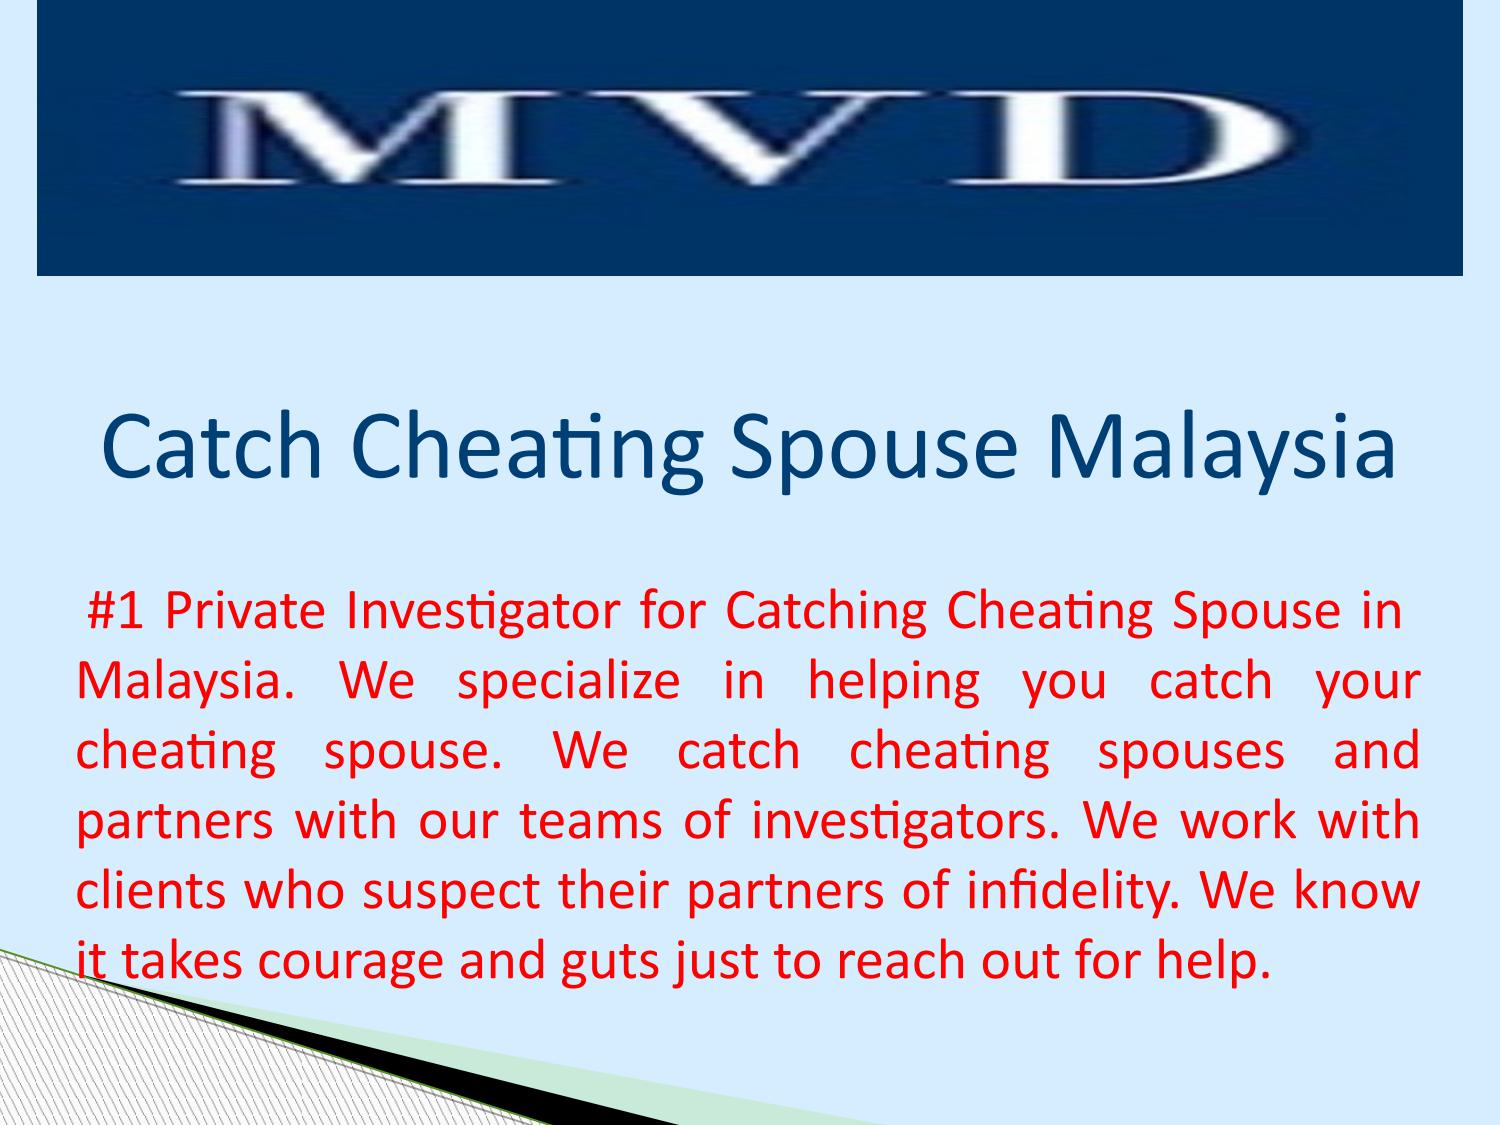 Catch Cheating Spouse Malaysia by MVD International - issuu